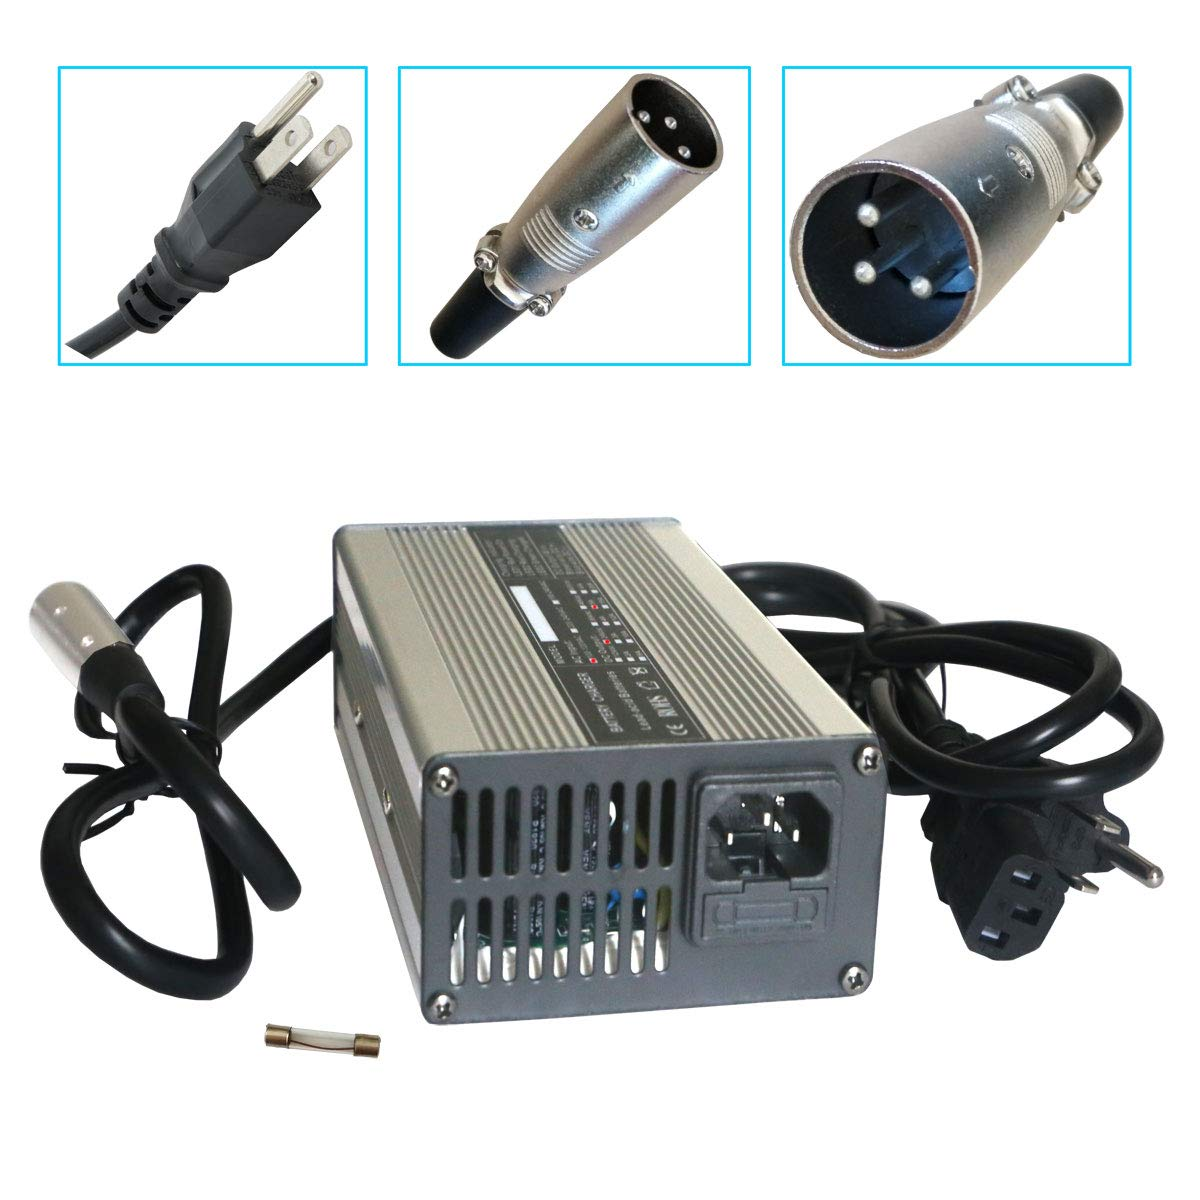 24V 5A Battery Charger with XLR Connector for Wheelchairs, Pride Mobility, Jazzy Power Chair, Drive Medical, Golden Technologies, Shoprider, Rascal 200T/500T/301 PC/314/318 PC/320 PC/326/326A/710 PC by Abakoo